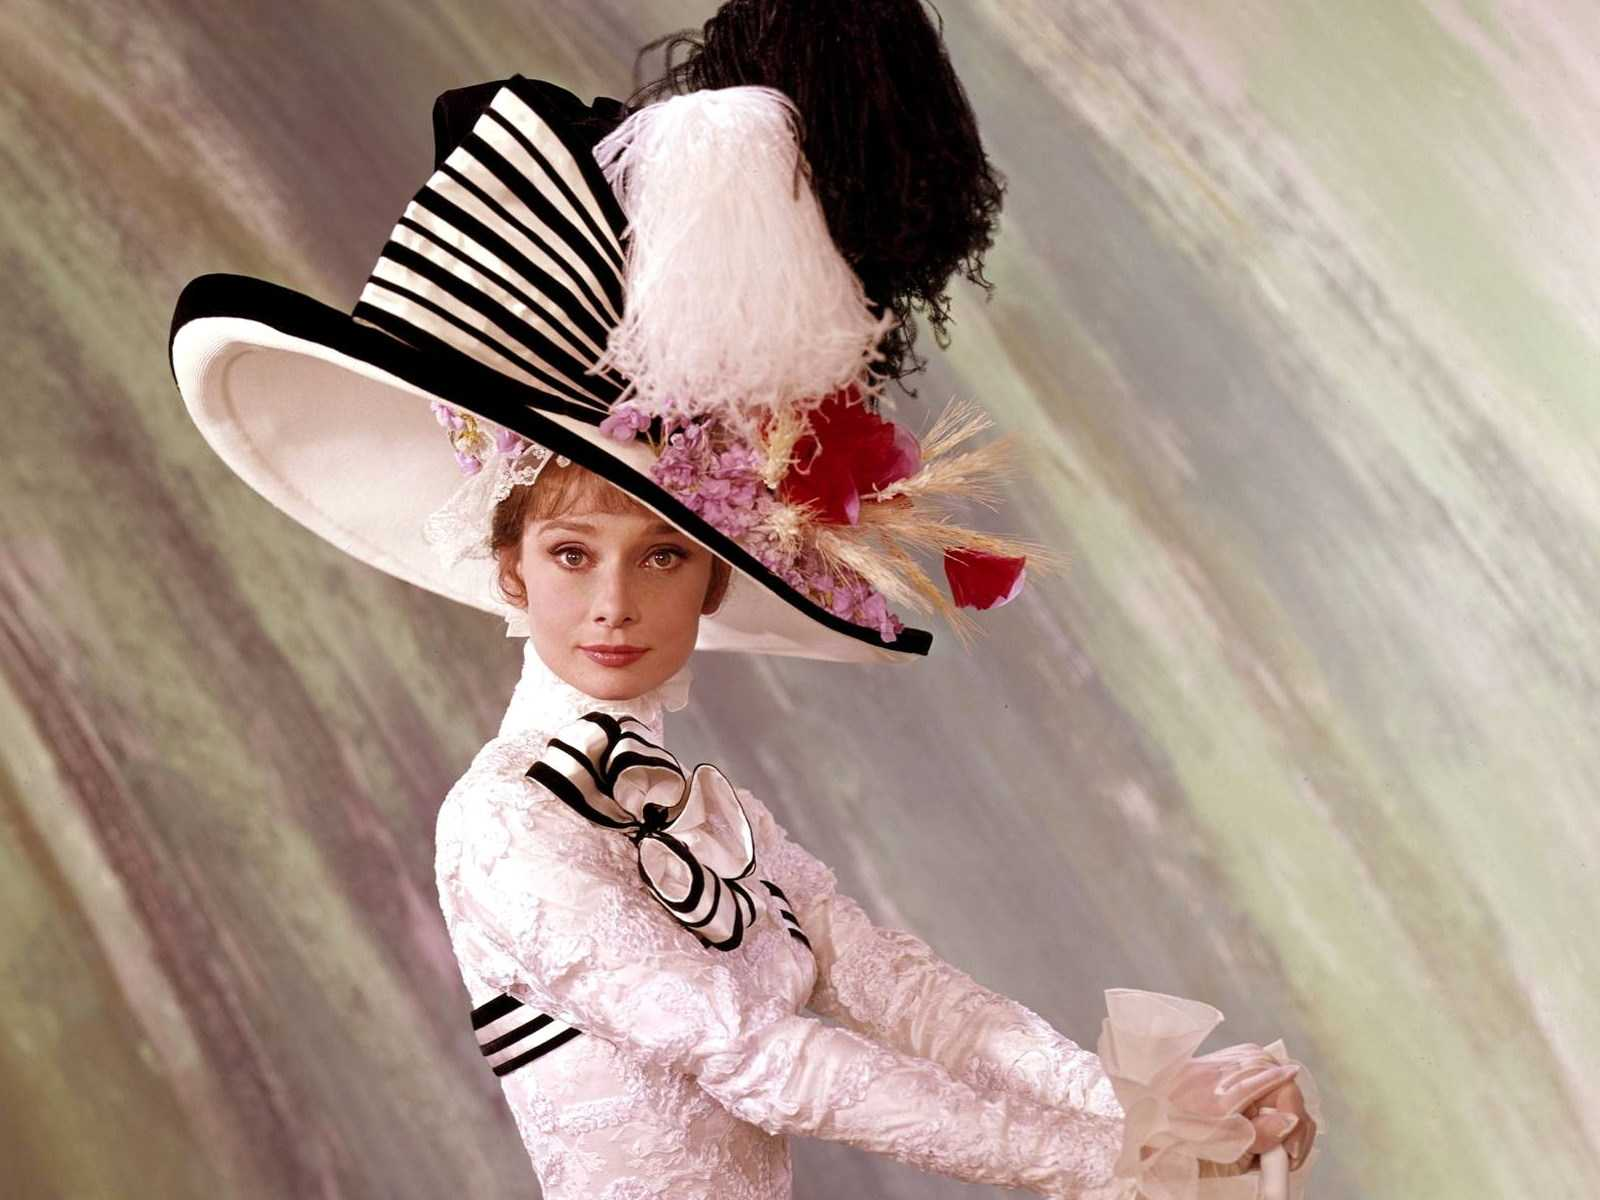 Audrey Hepburn Hats - white and black full brim hat